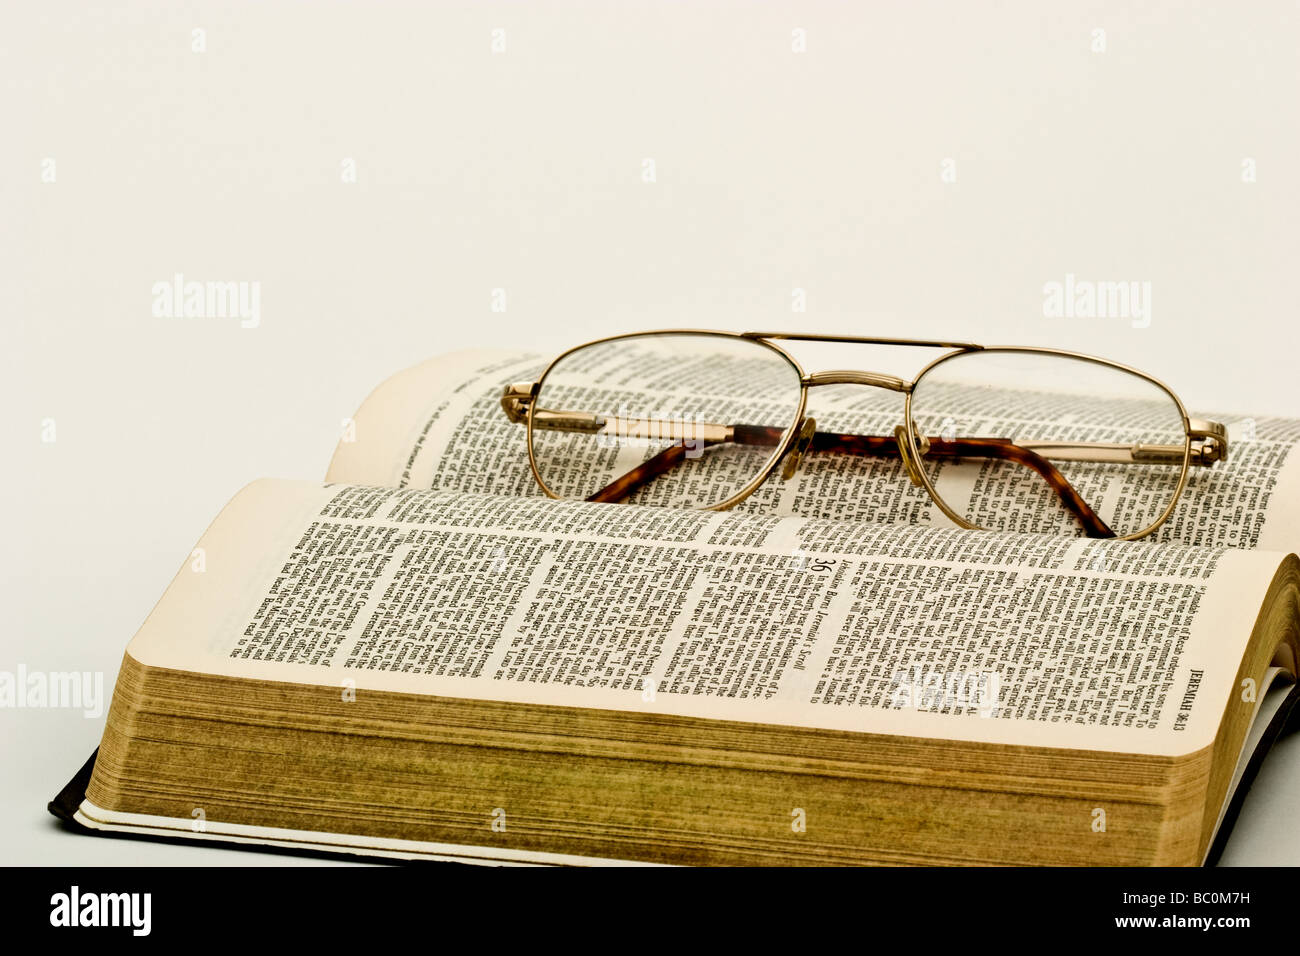 Reading glasses on top of an open book - Stock Image